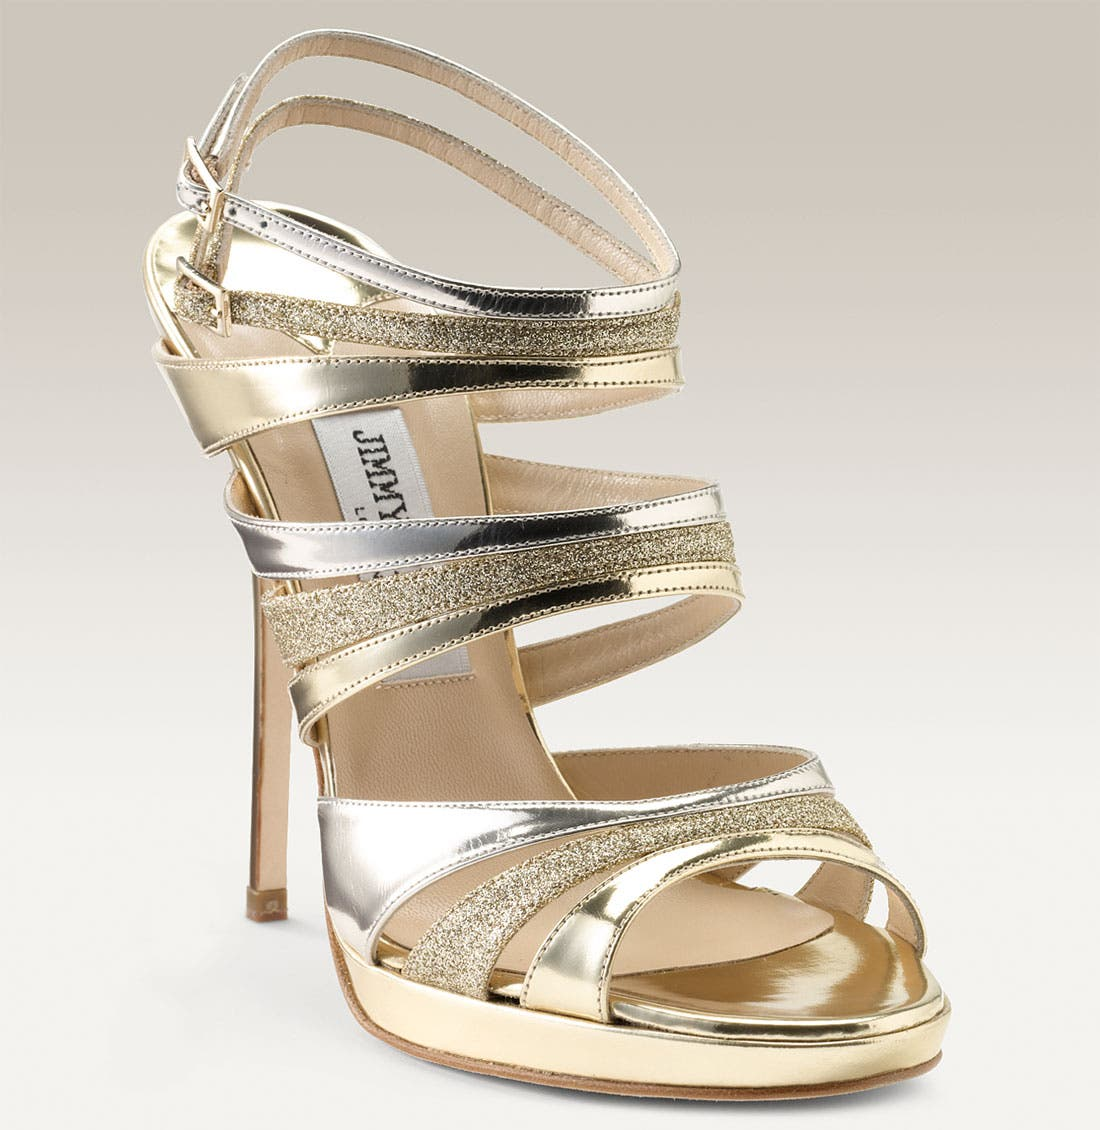 Alternate Image 1 Selected - Jimmy Choo 'Buzz' Caged Sandal